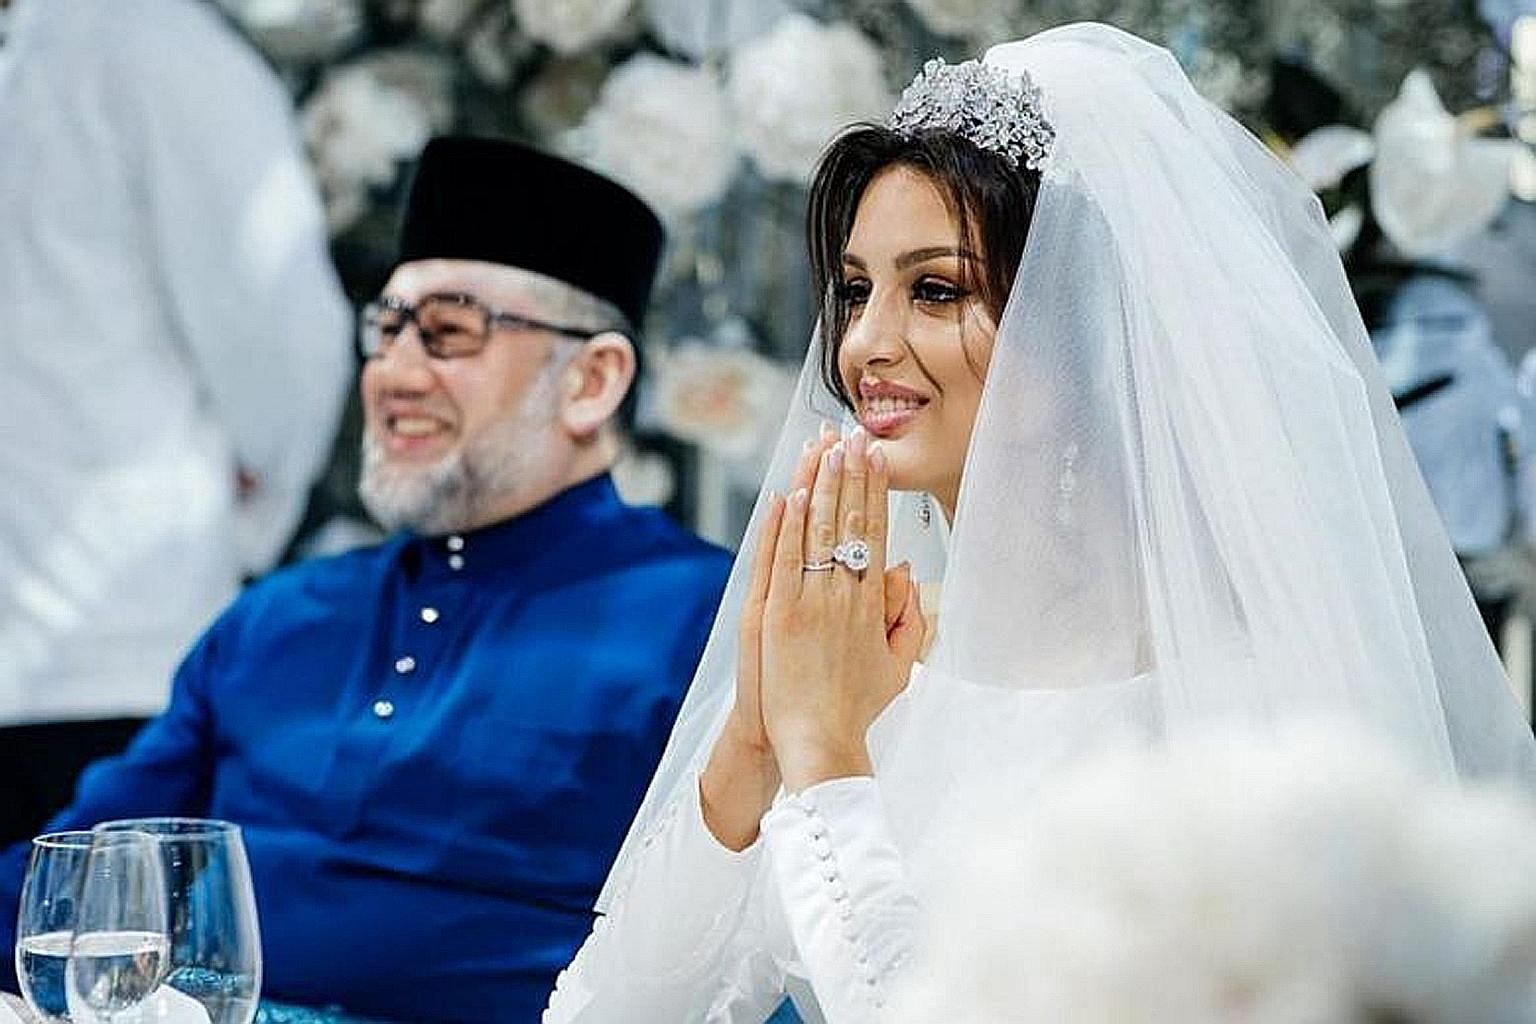 Ms Oksana Voevodina said she was forced to sell the ring after her former husband, Sultan Muhammad V of Kelantan, left her when she was pregnant. She said she used the money to pay for two months of hospital bills.